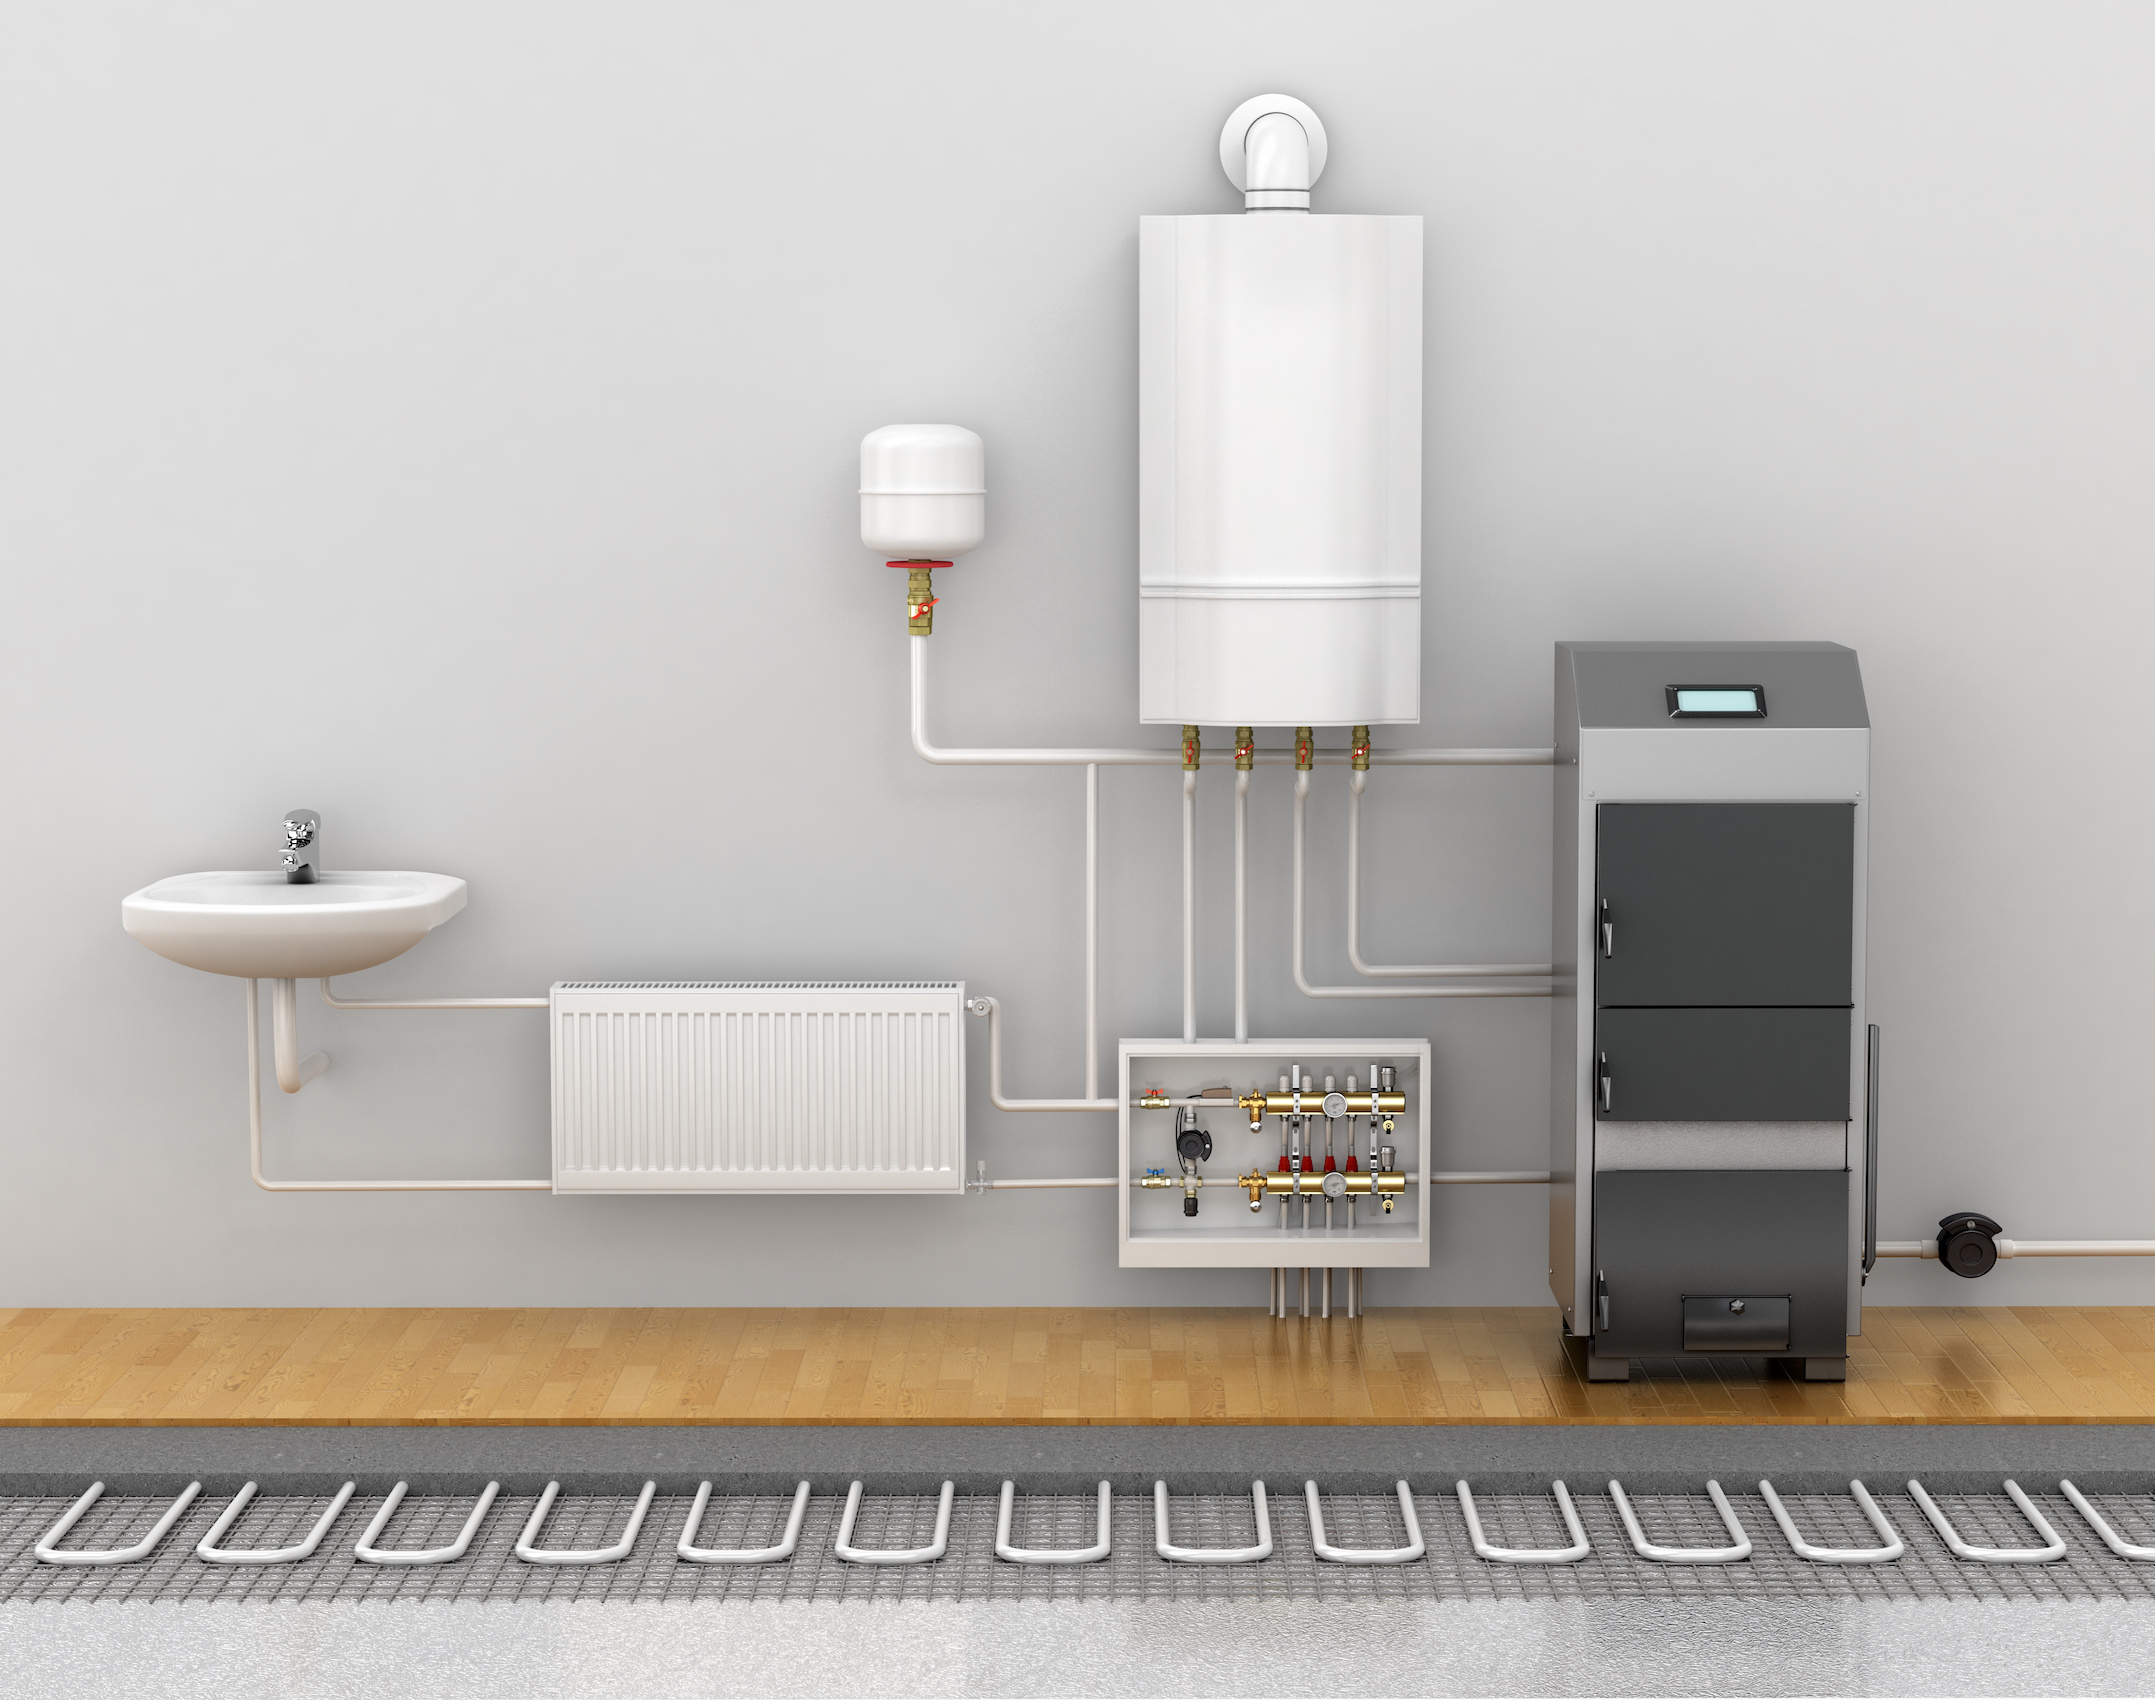 boiler replacement scheme